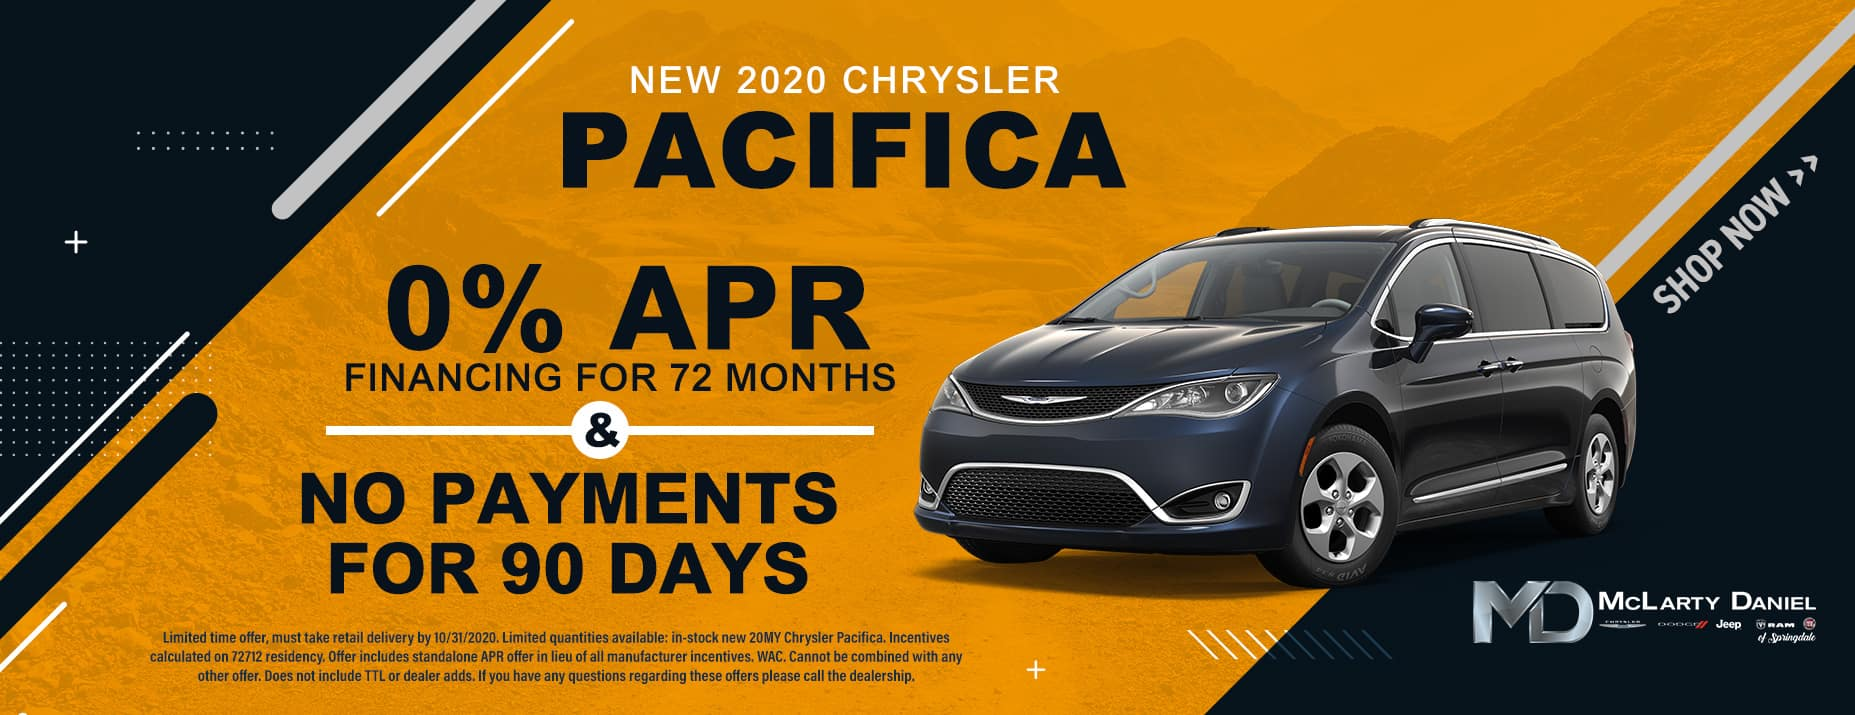 0% APR for 72 months and NO PAYMENTS FOR 90 DAYS available on 2020 Chrysler Pacifica!